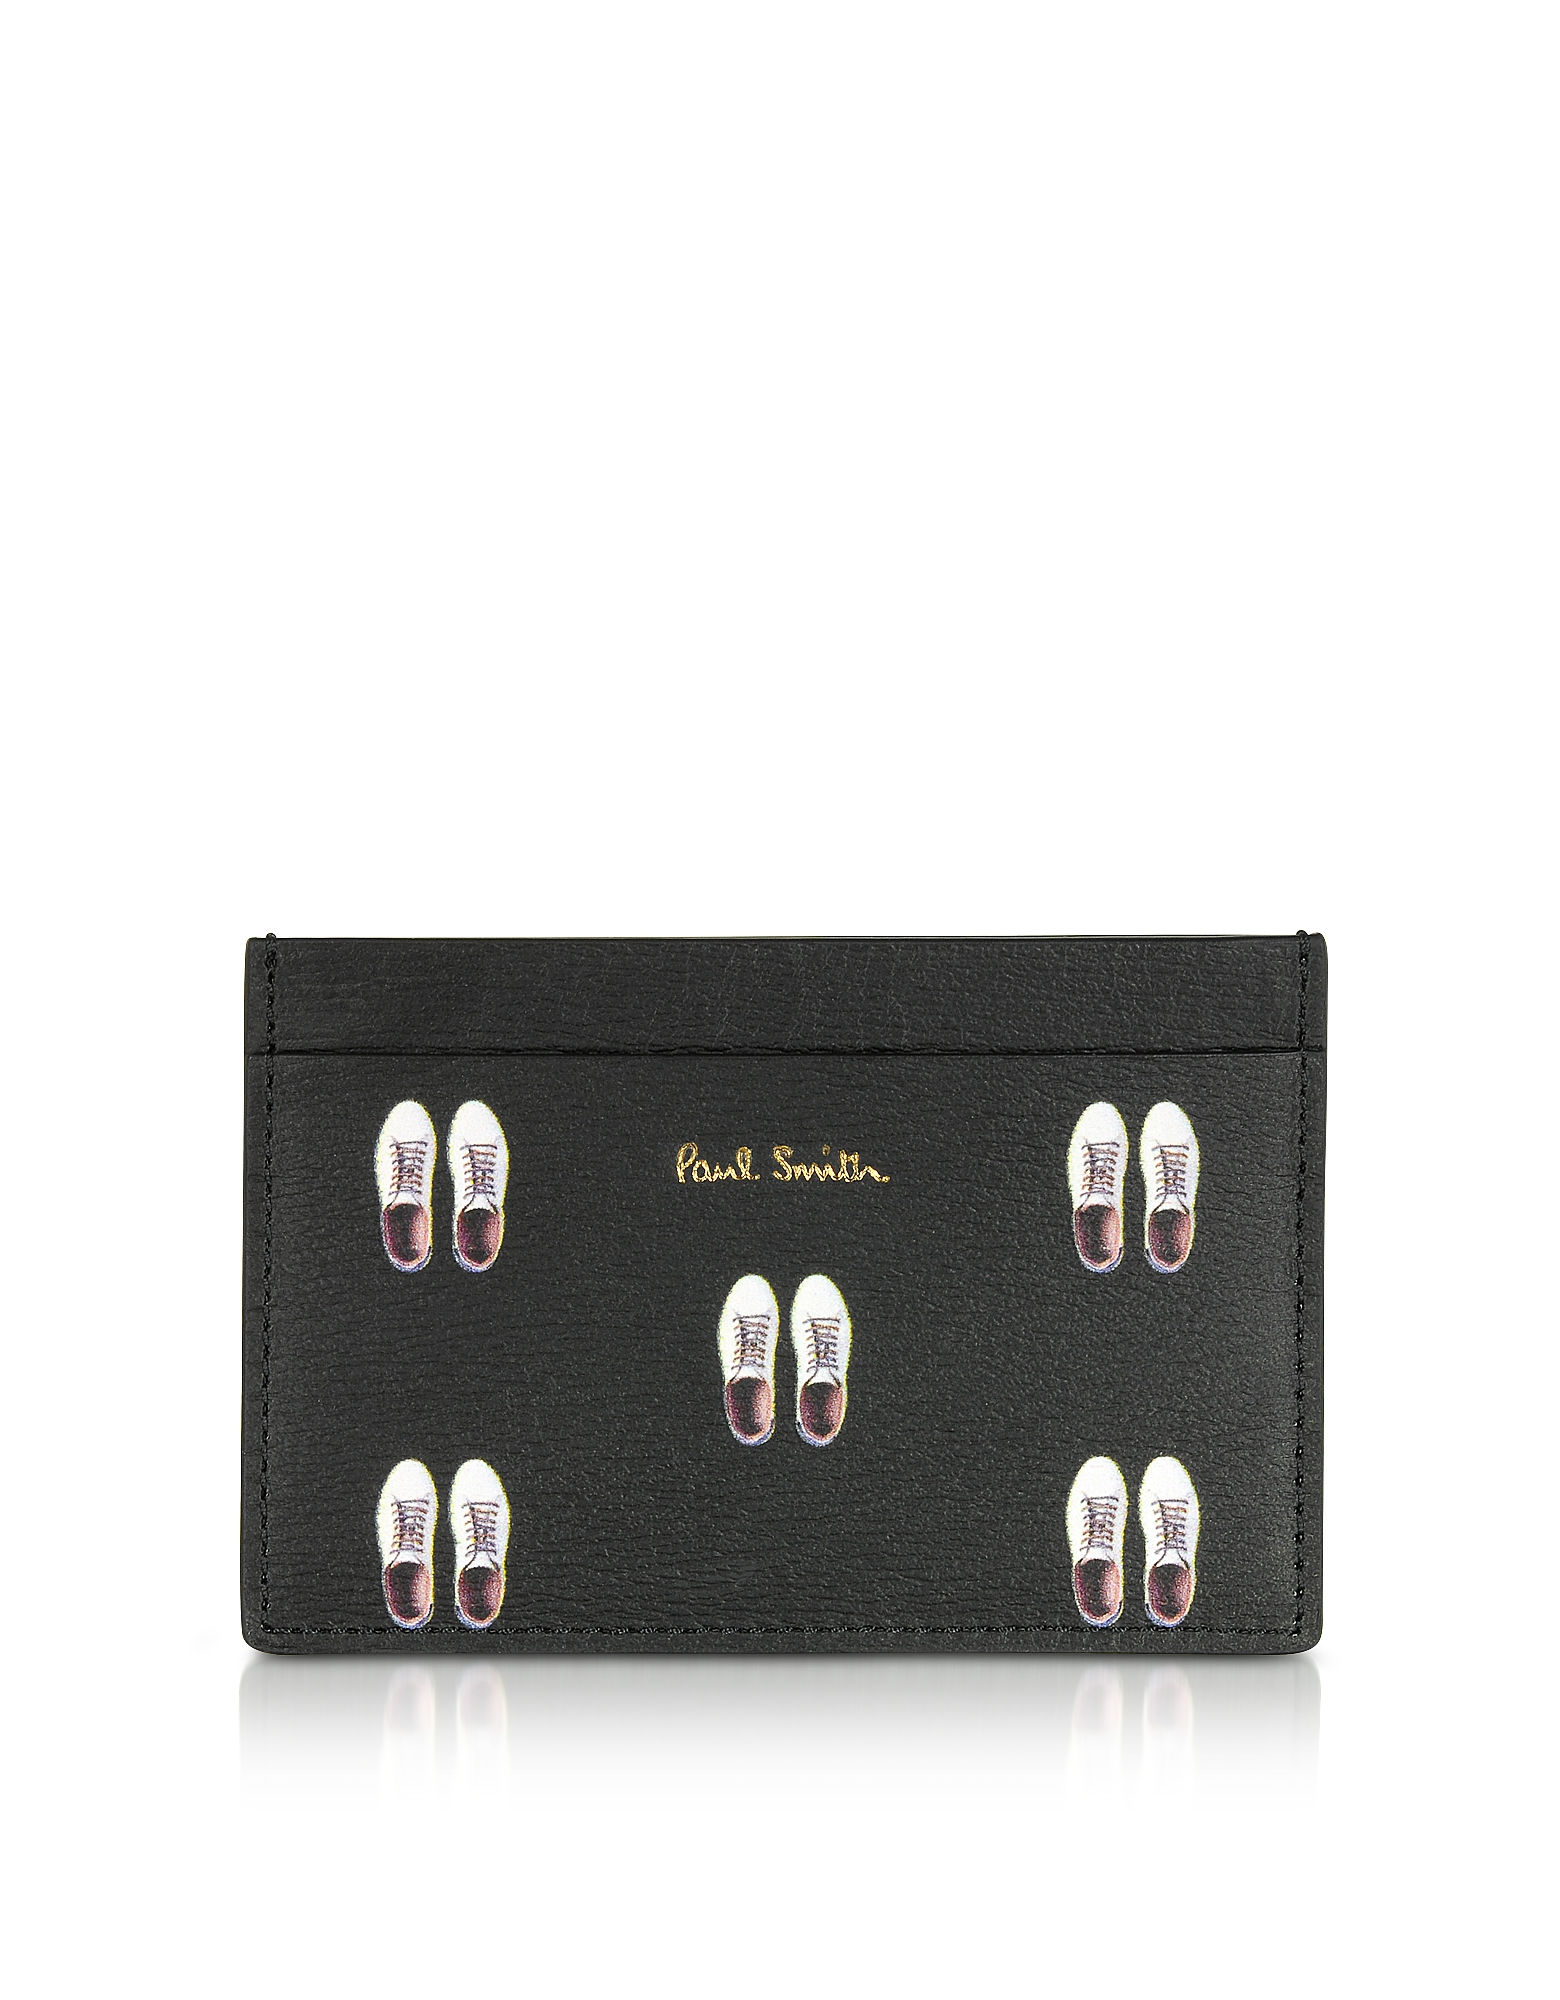 Paul Smith Wallets, Black Leather Basso Print Men's Credit Card Holder